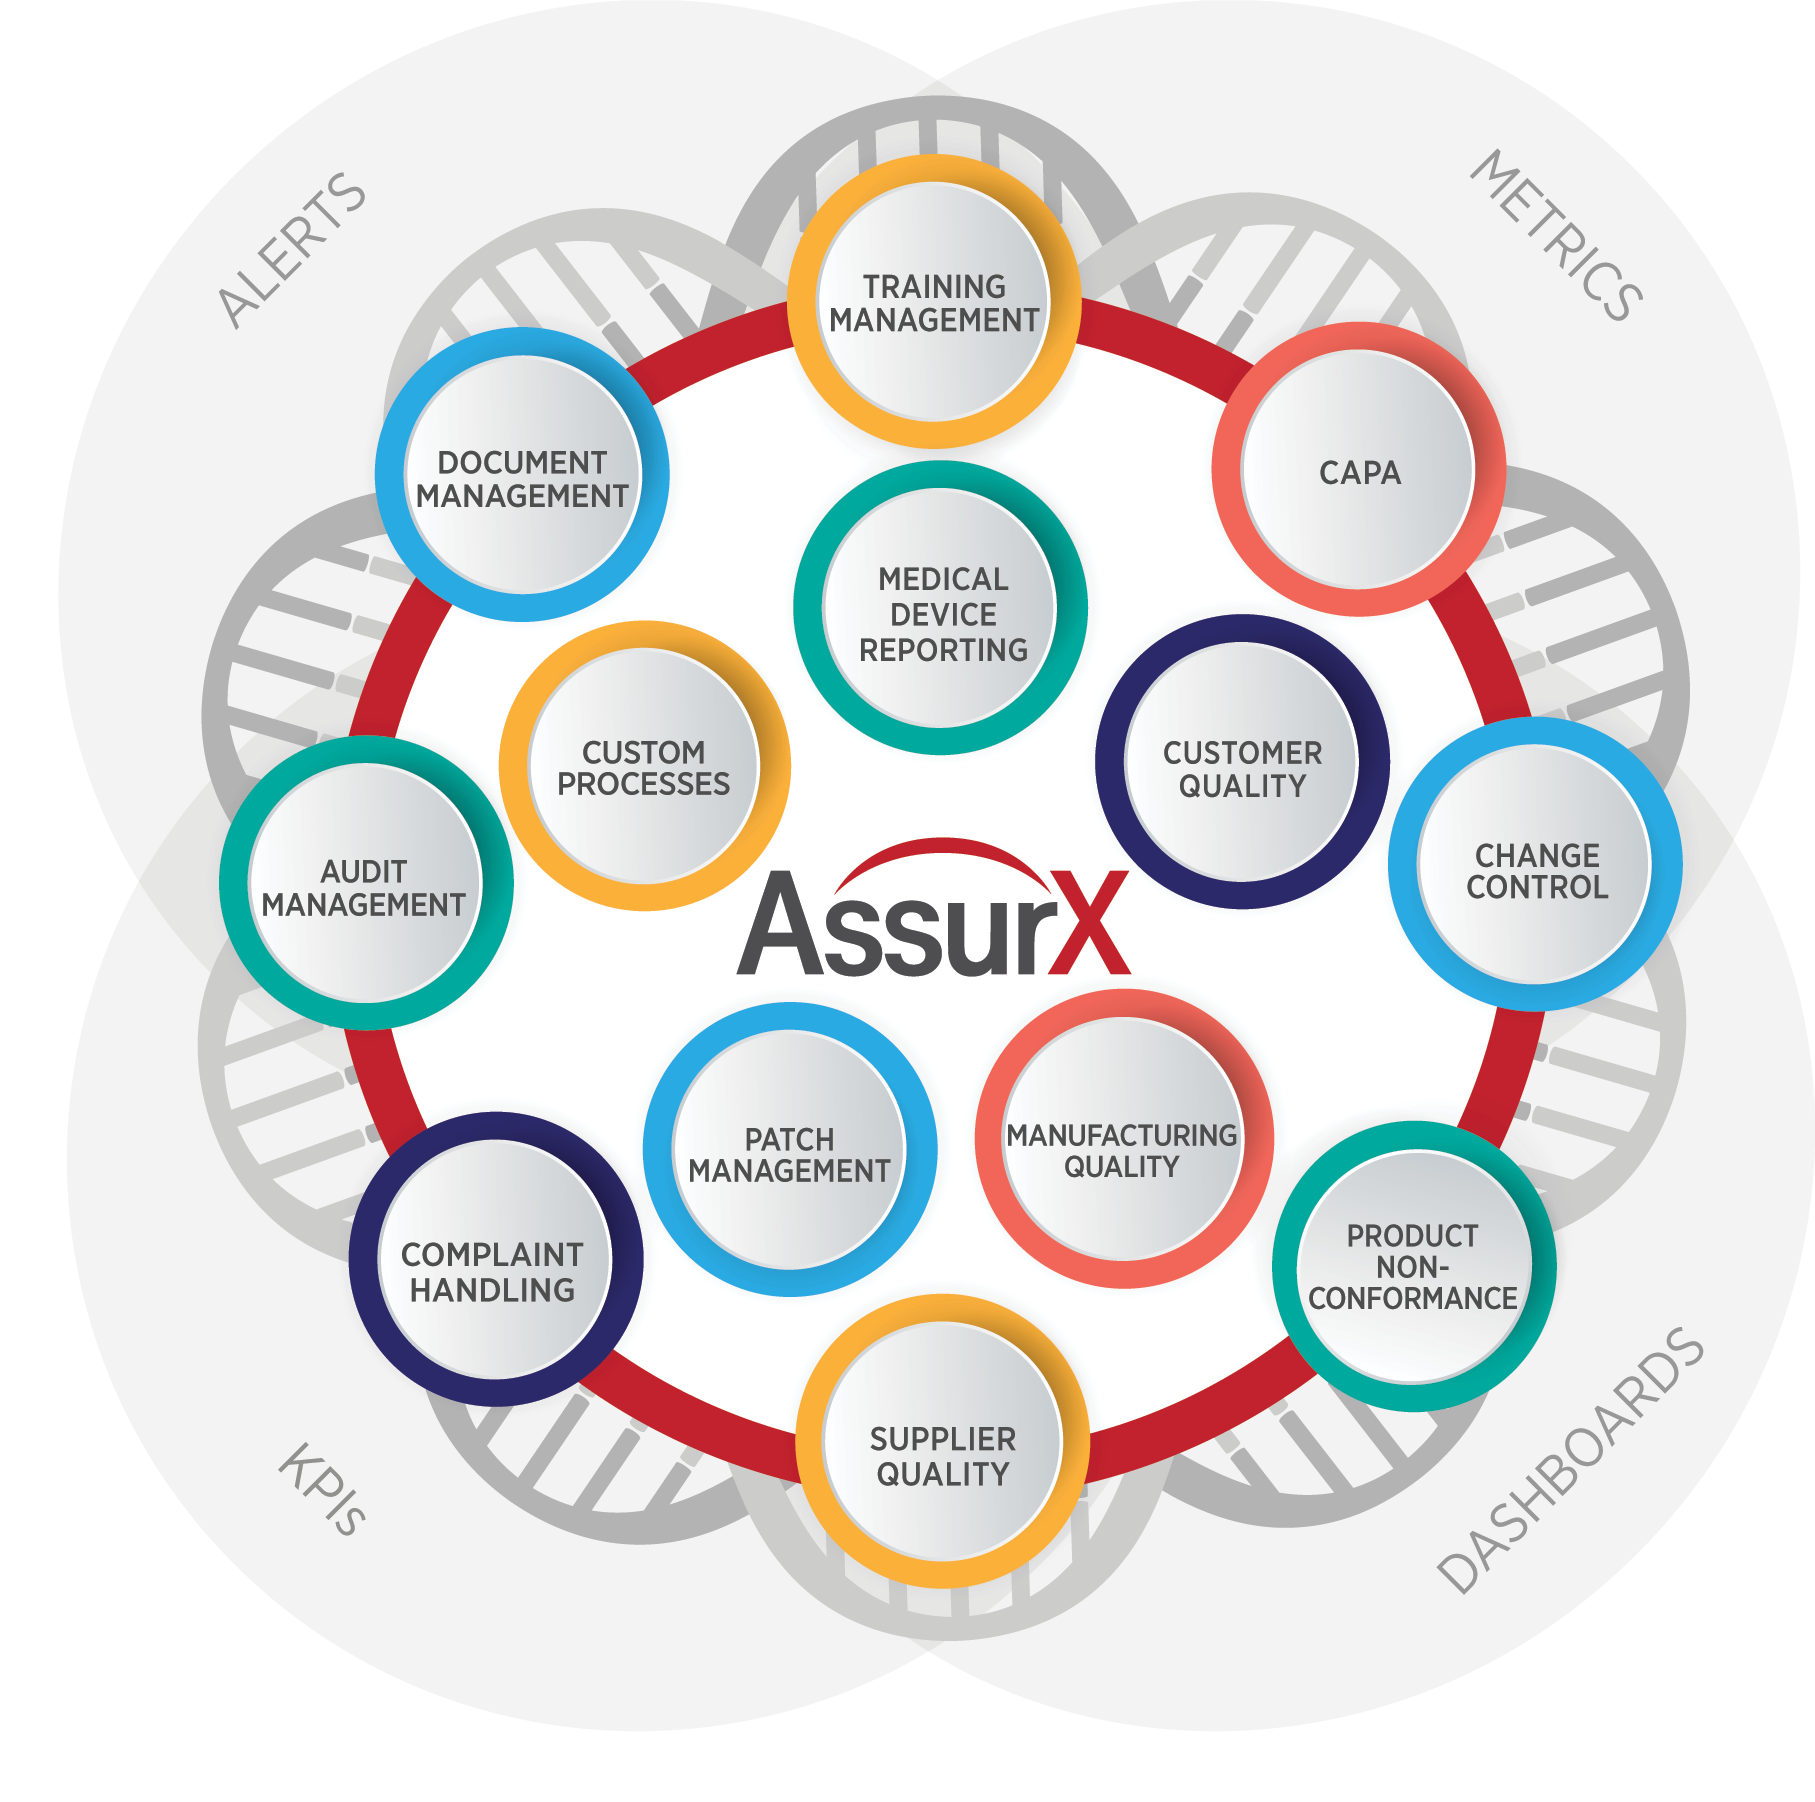 AssurX Quality Management System and Compliance Management Software Platform